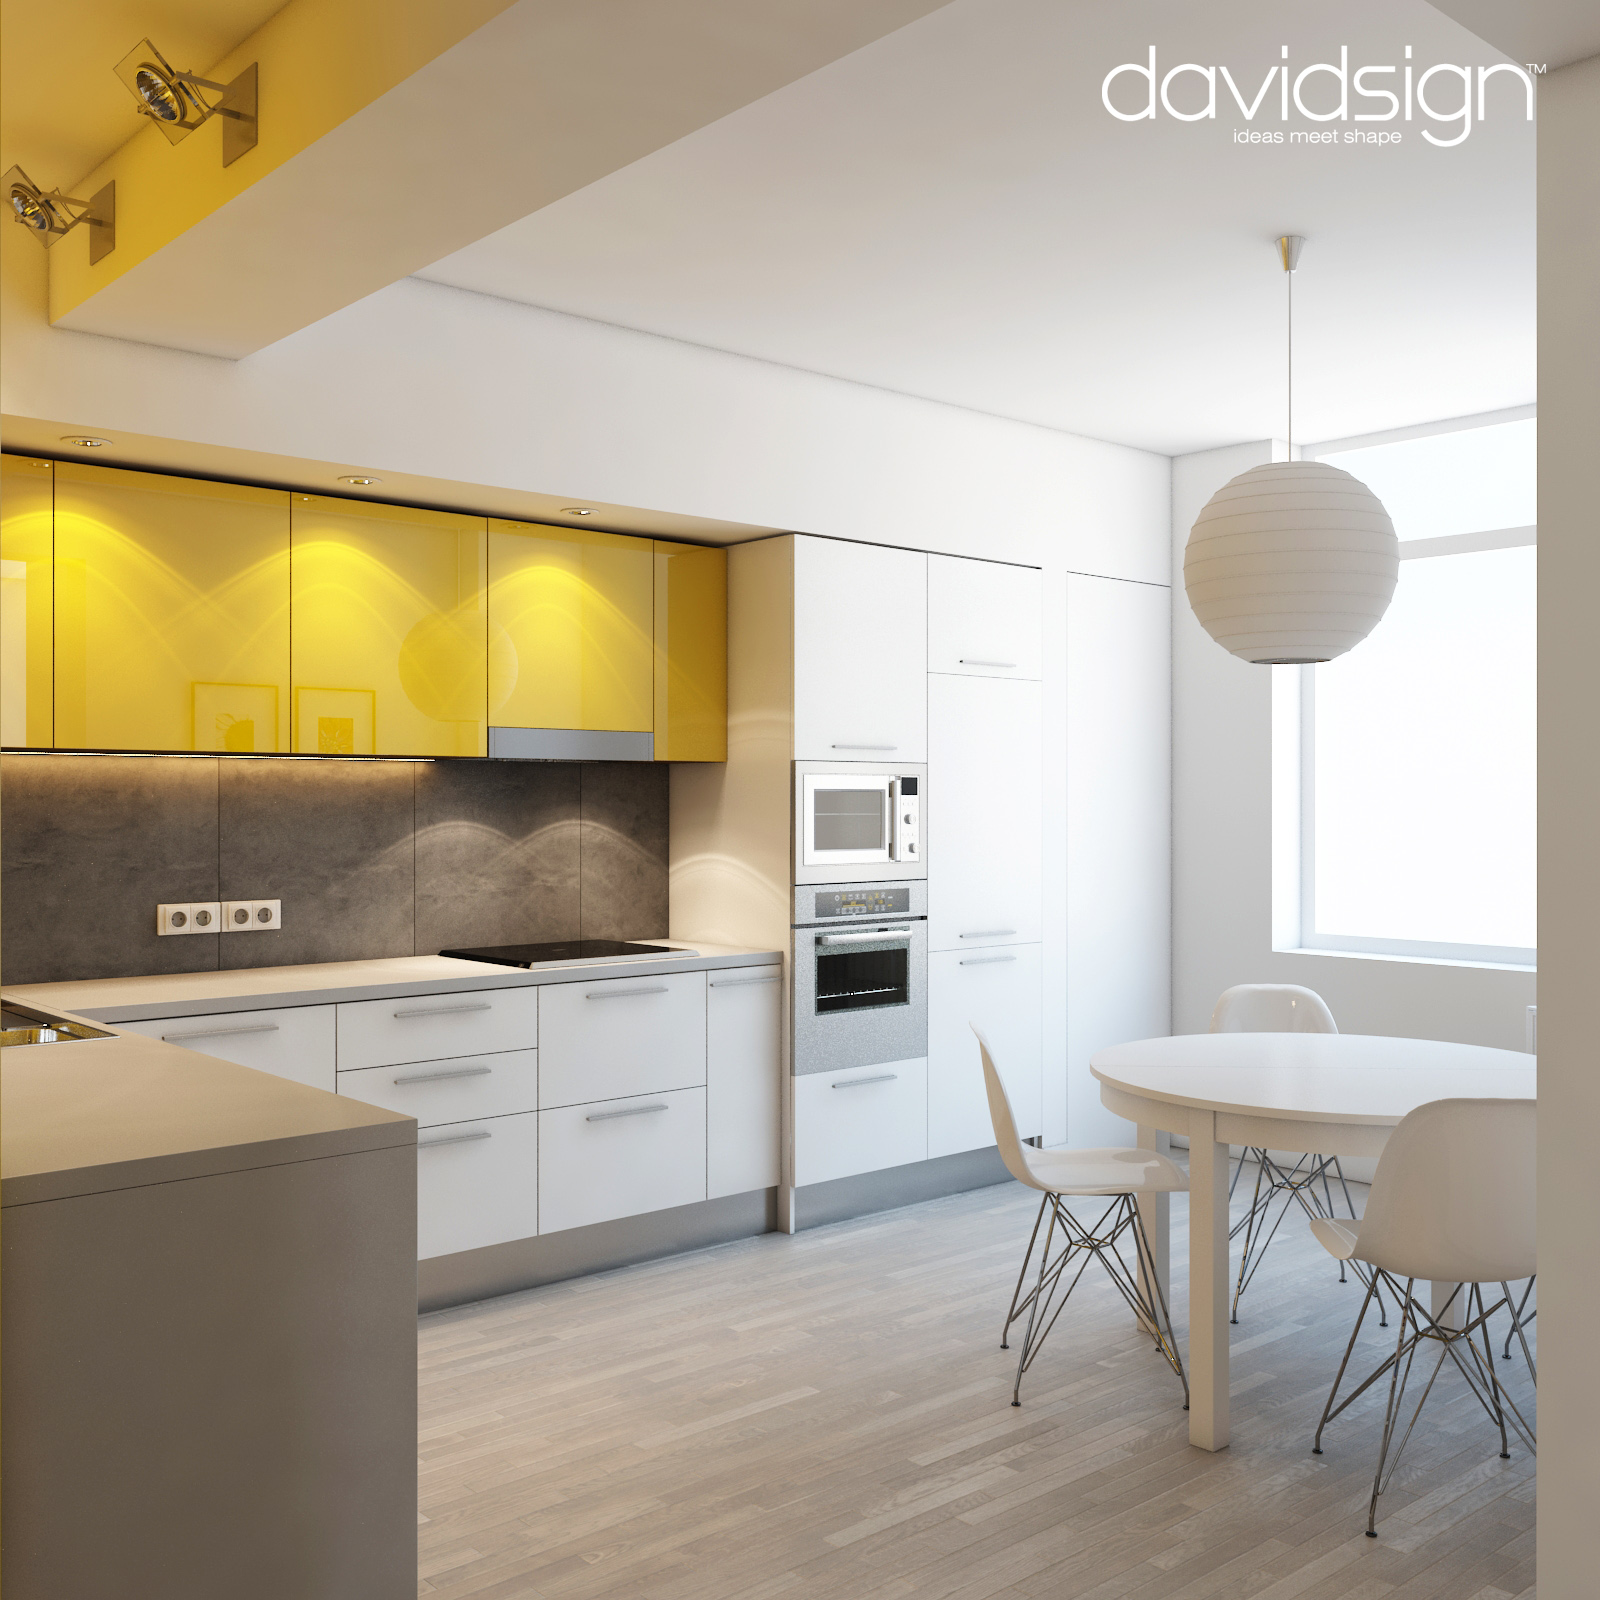 Design interior pentru apartament n chi in u davidsign blog for Decorator interior